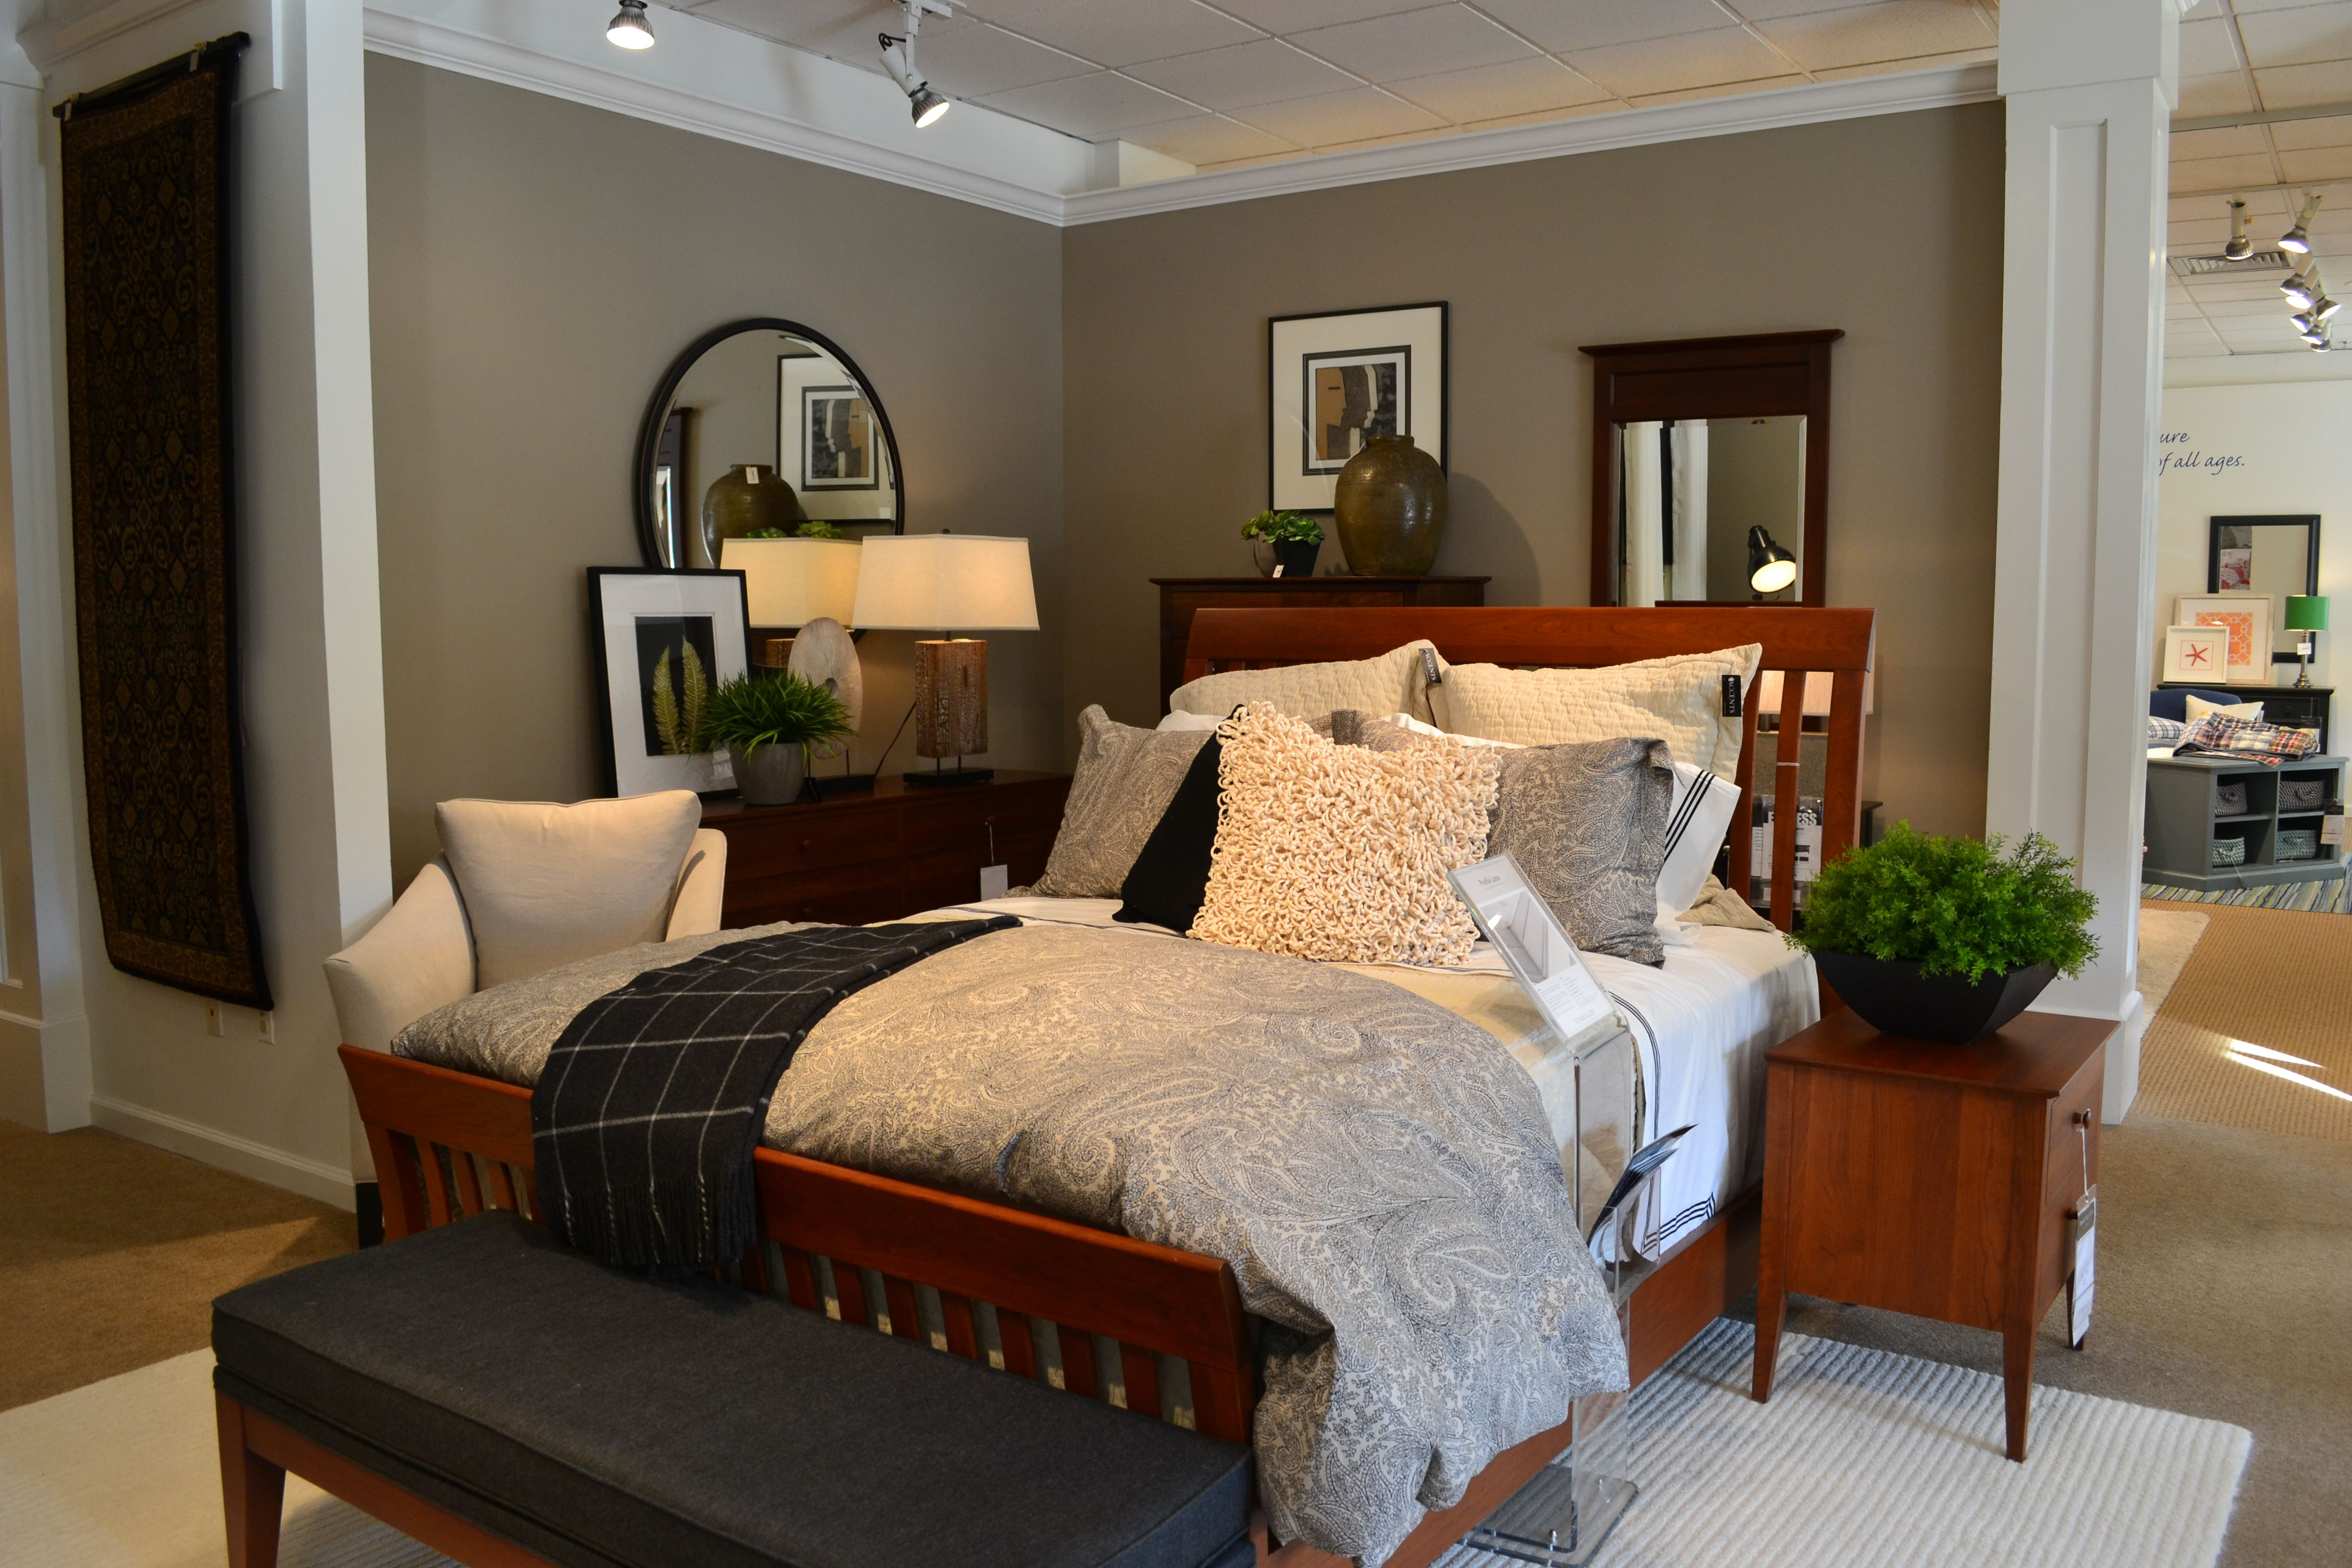 Ethan Allen New Impressions Collection Featuring Teagan